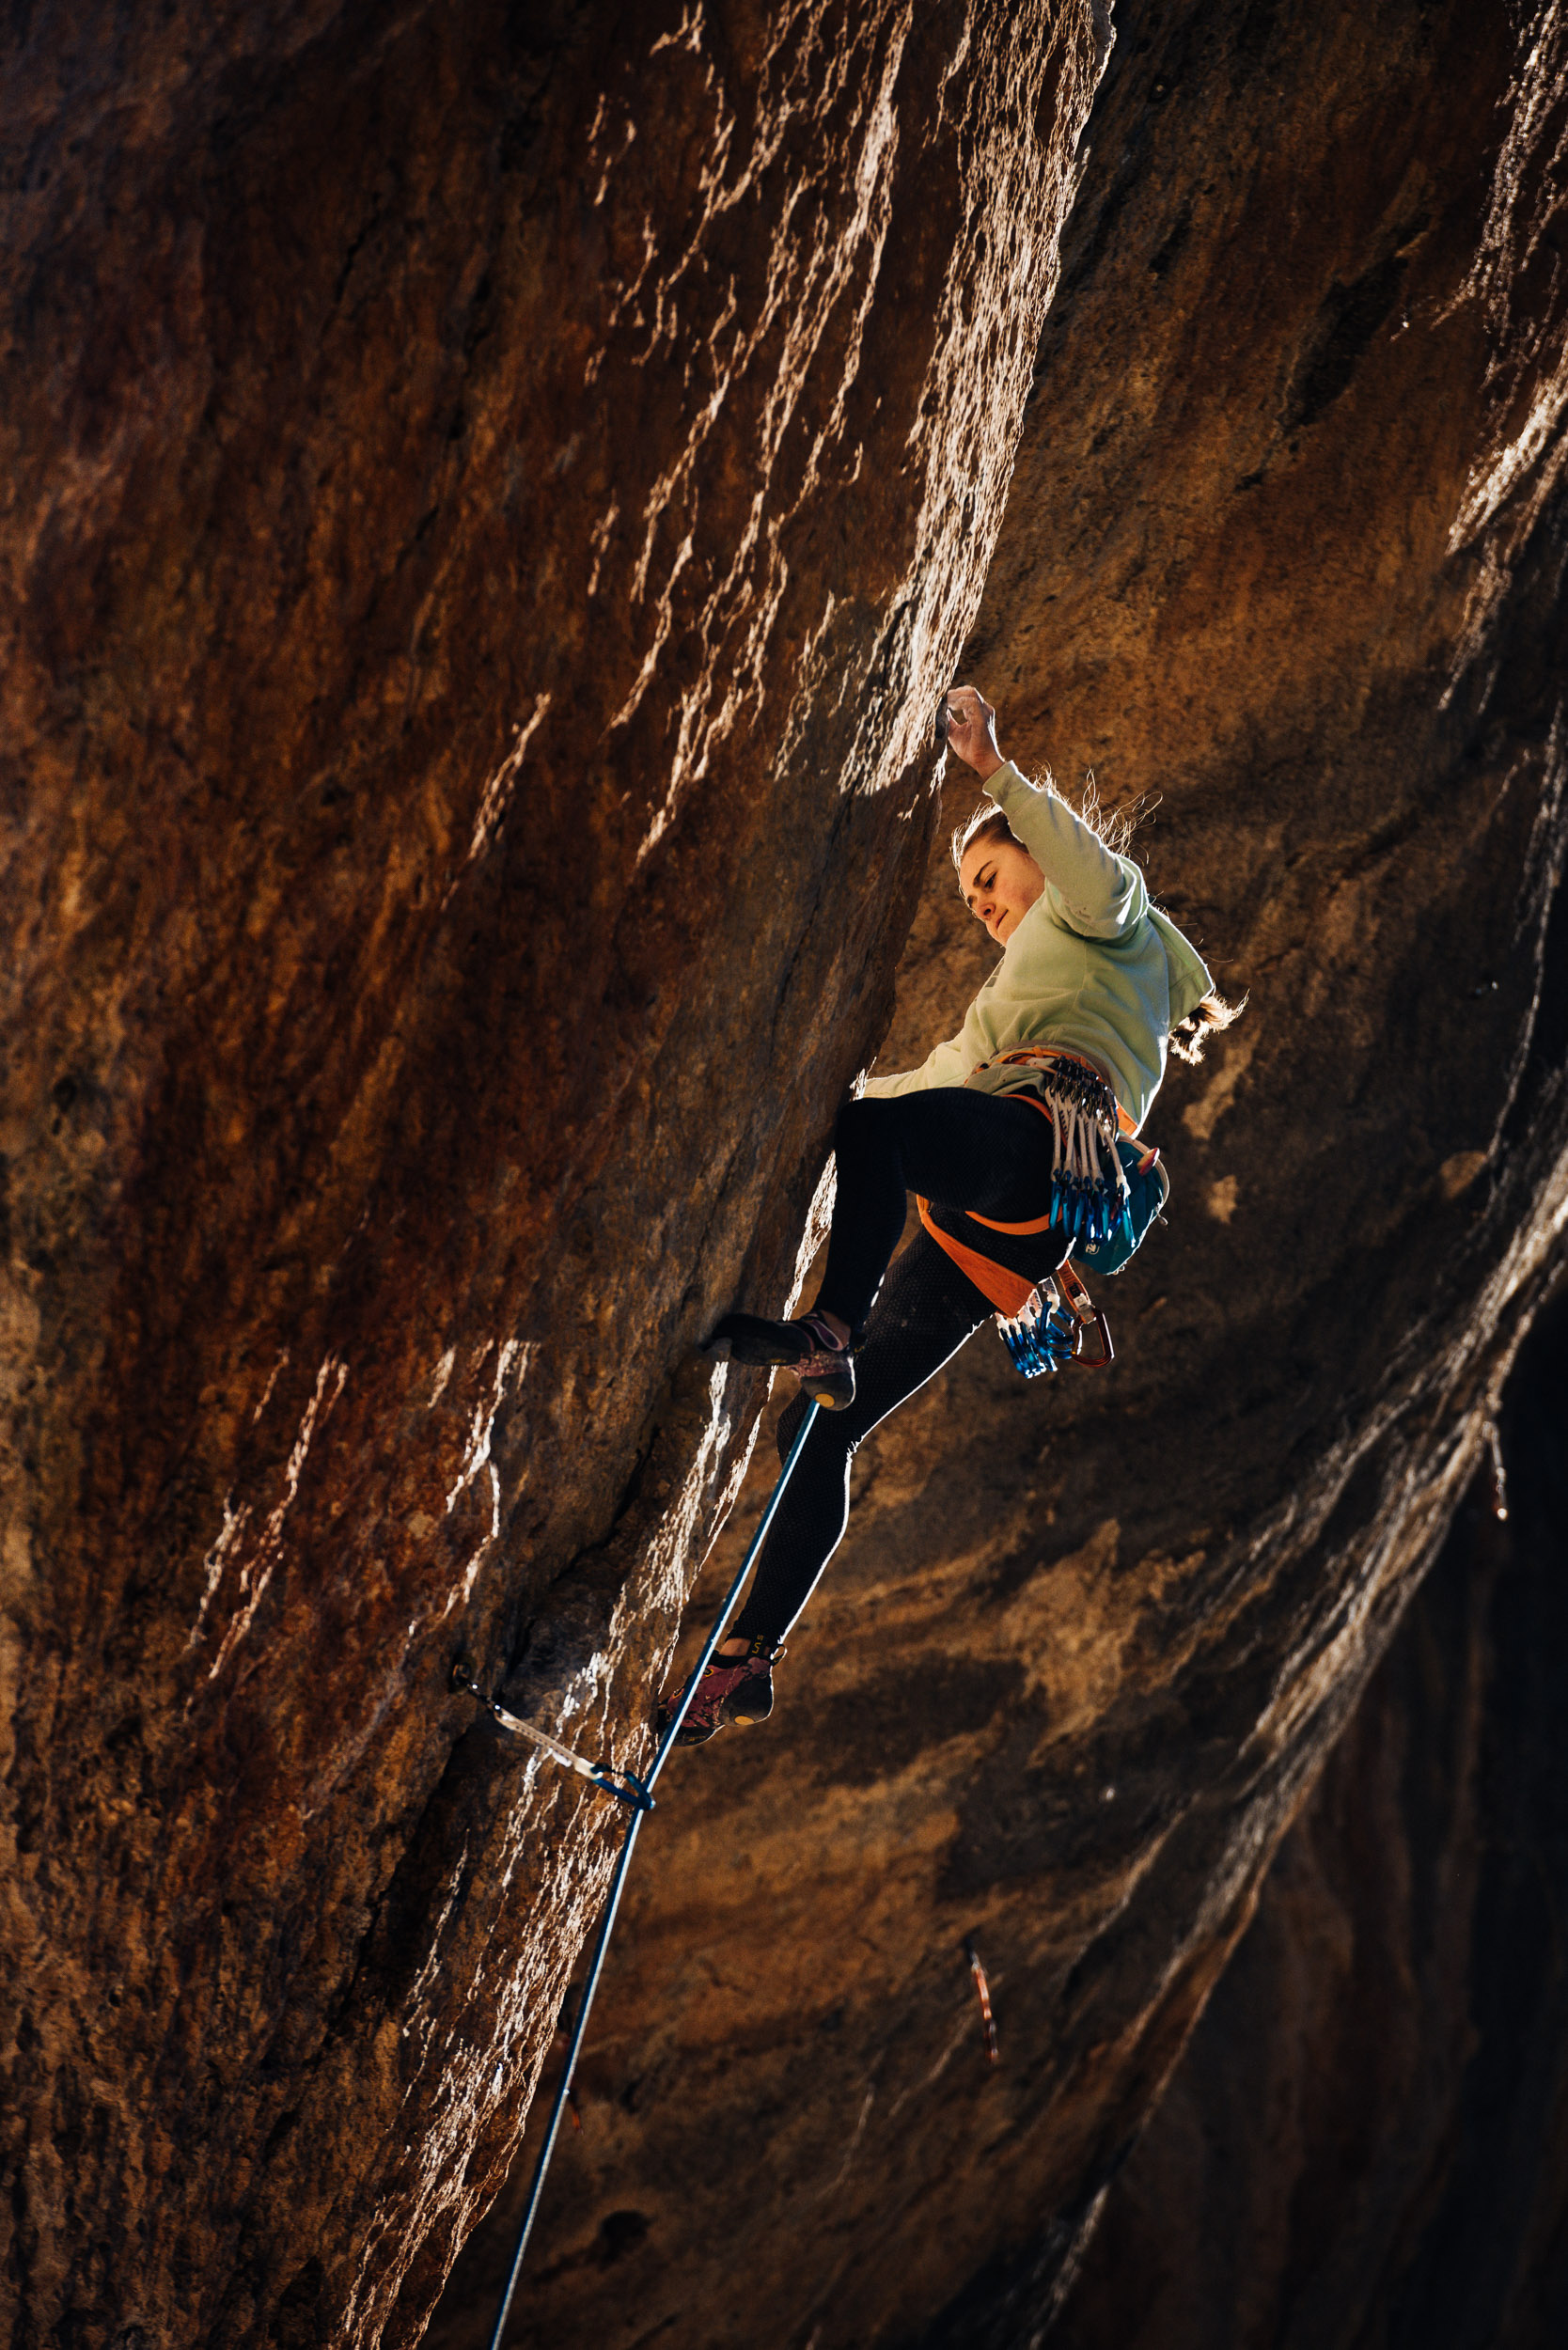 Margo Hayes for The North Face - Greg Mionske - Advertising and Editorial Photographer in Denver